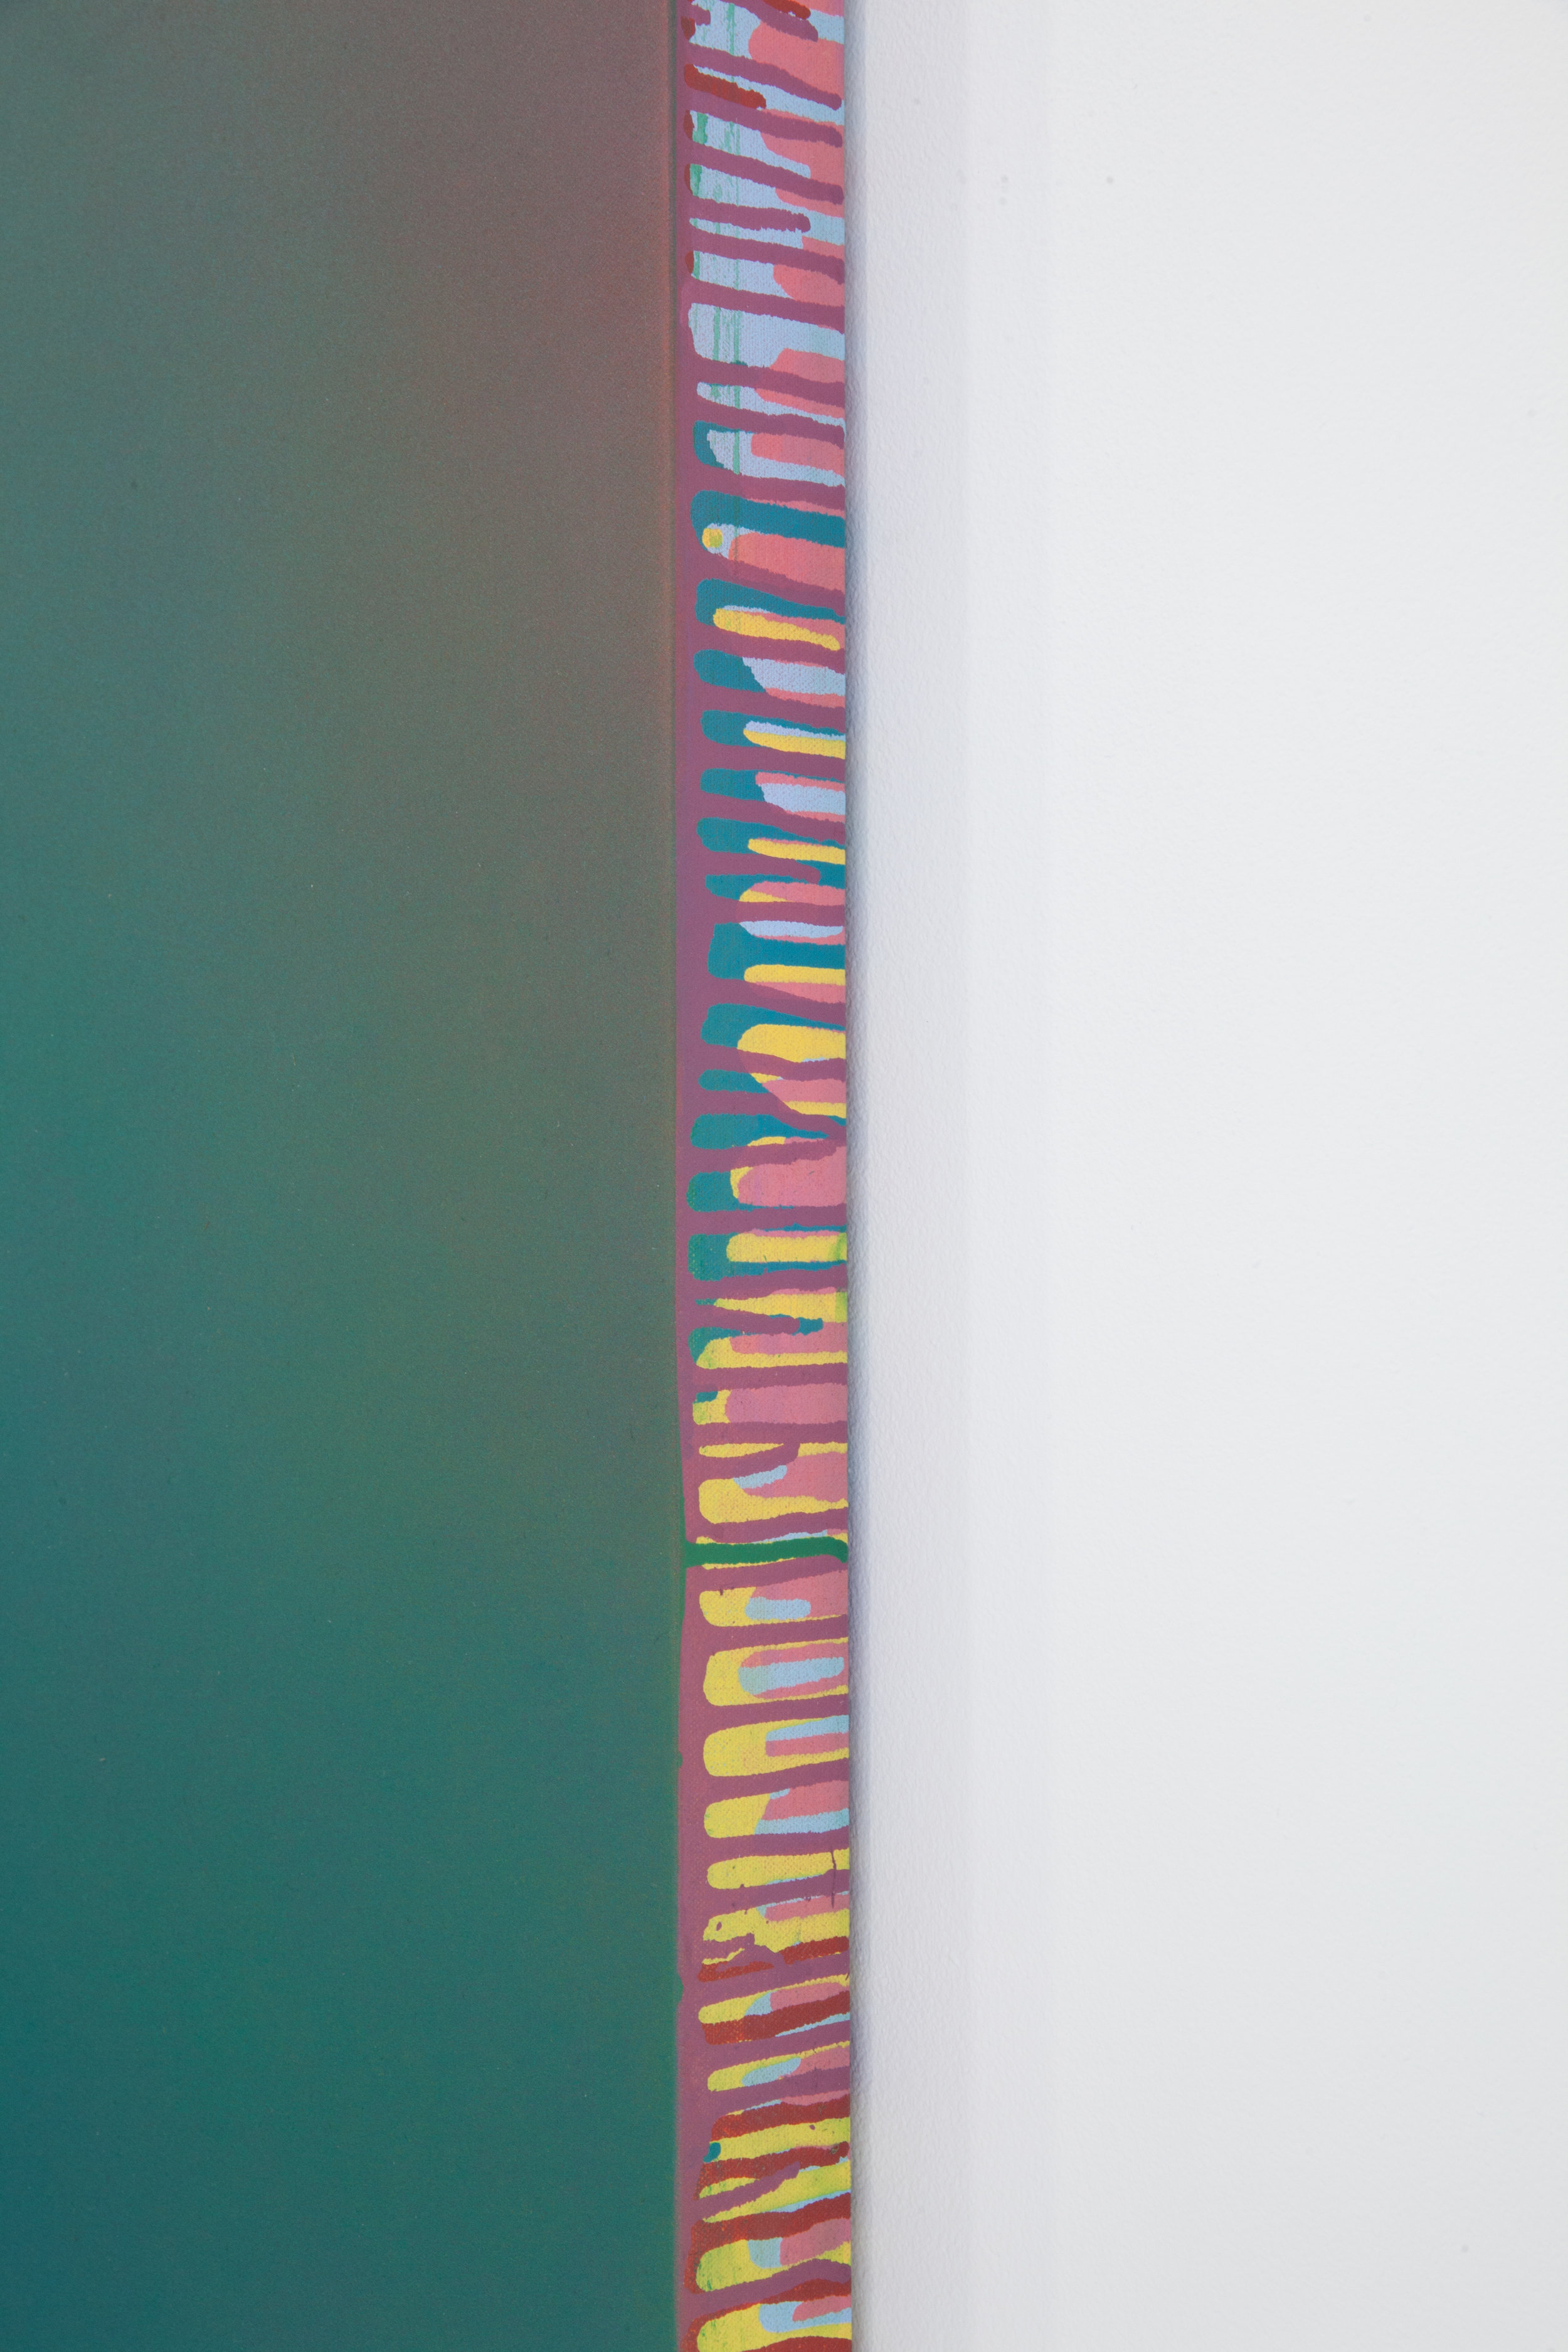 (DETAIL) Counterpart Sevens 5 B , 2018 Paint on shaped canvas Approx. 51 x 51 inches